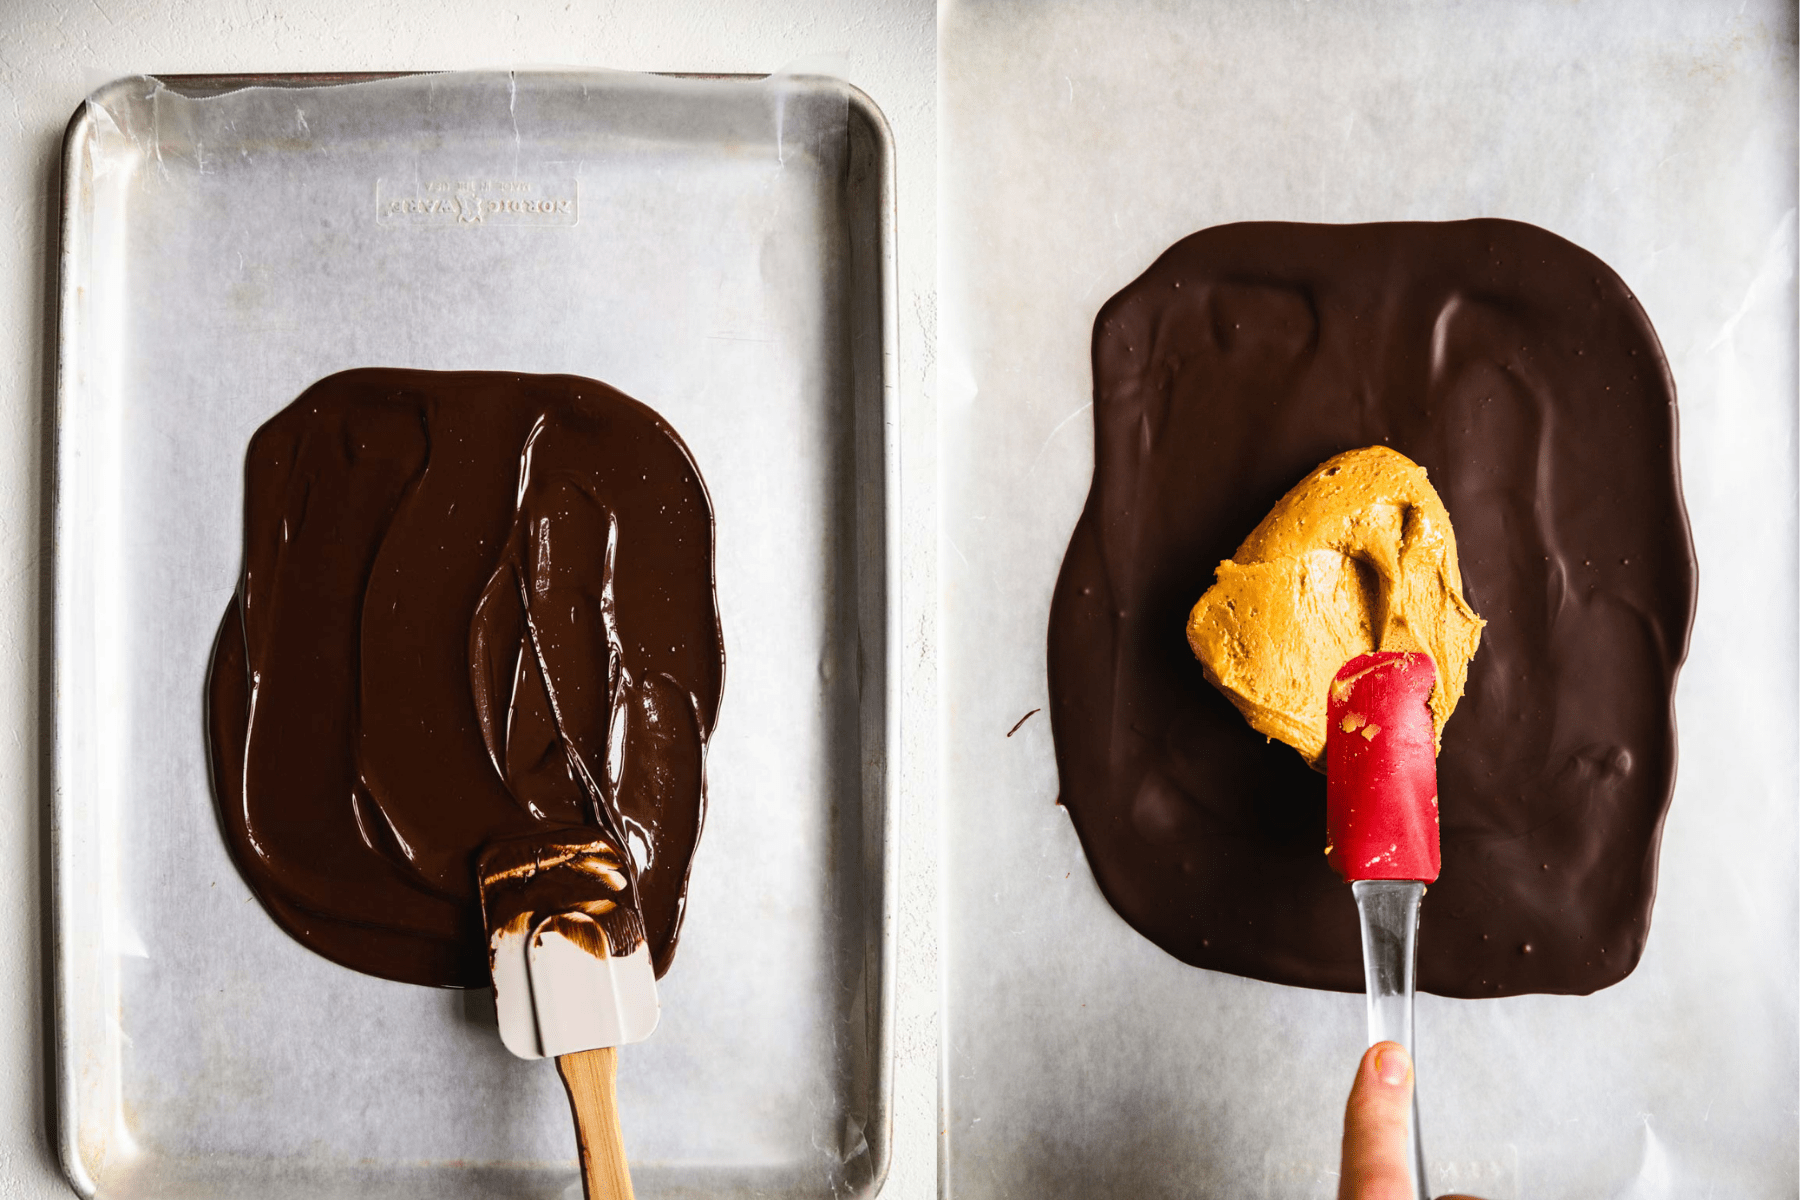 side by side image of chocolate on a baking sheet with peanut butter layer next to it.